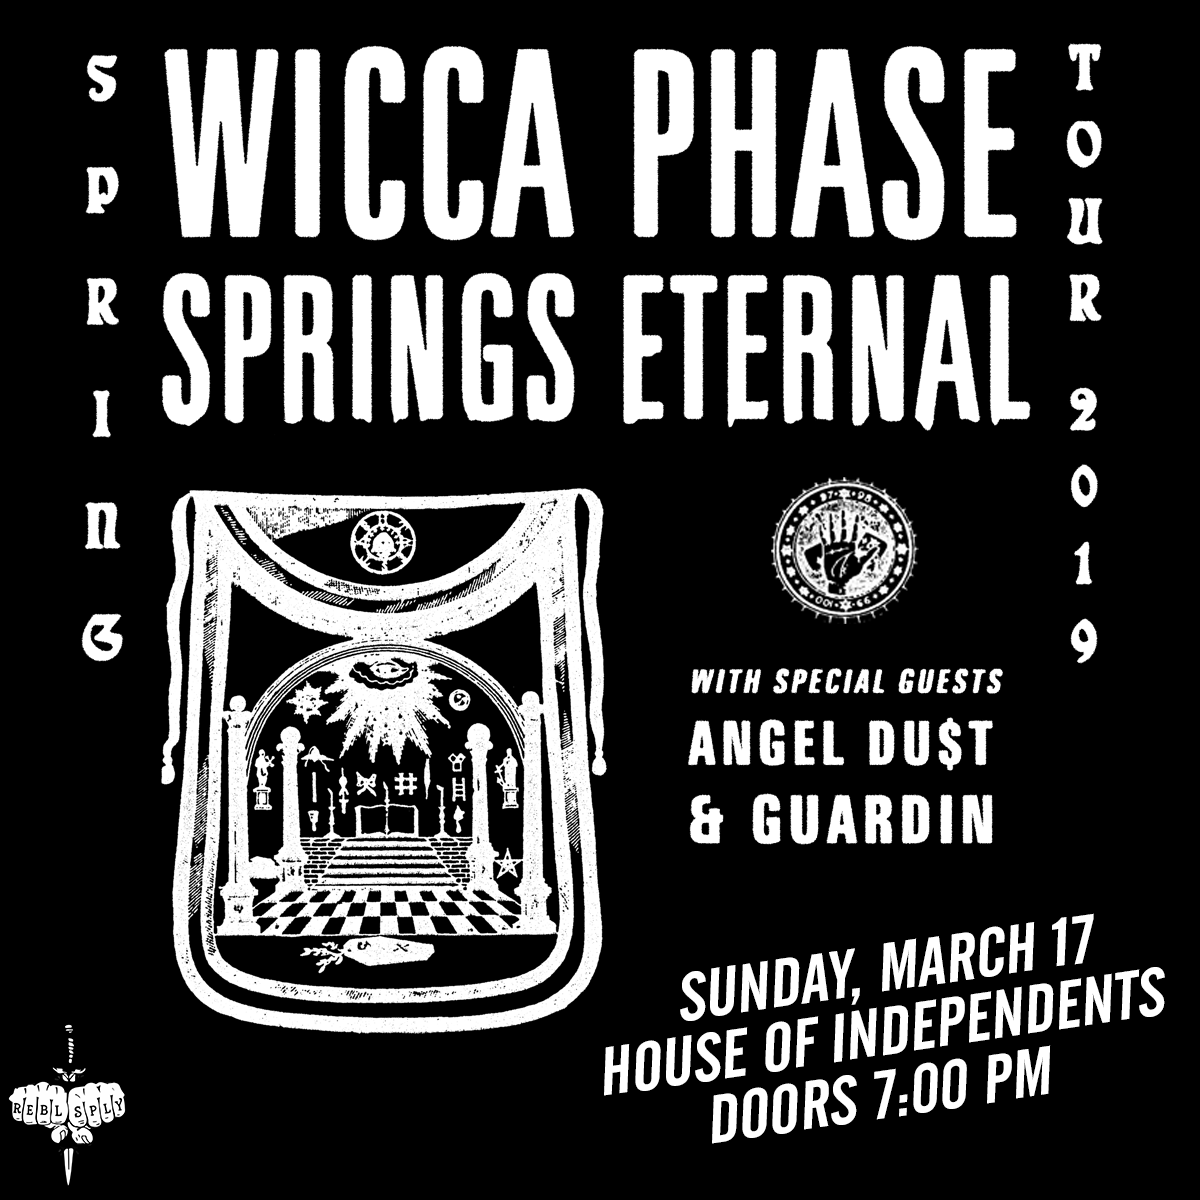 Wicca Phase Springs Eternal – House of Independents